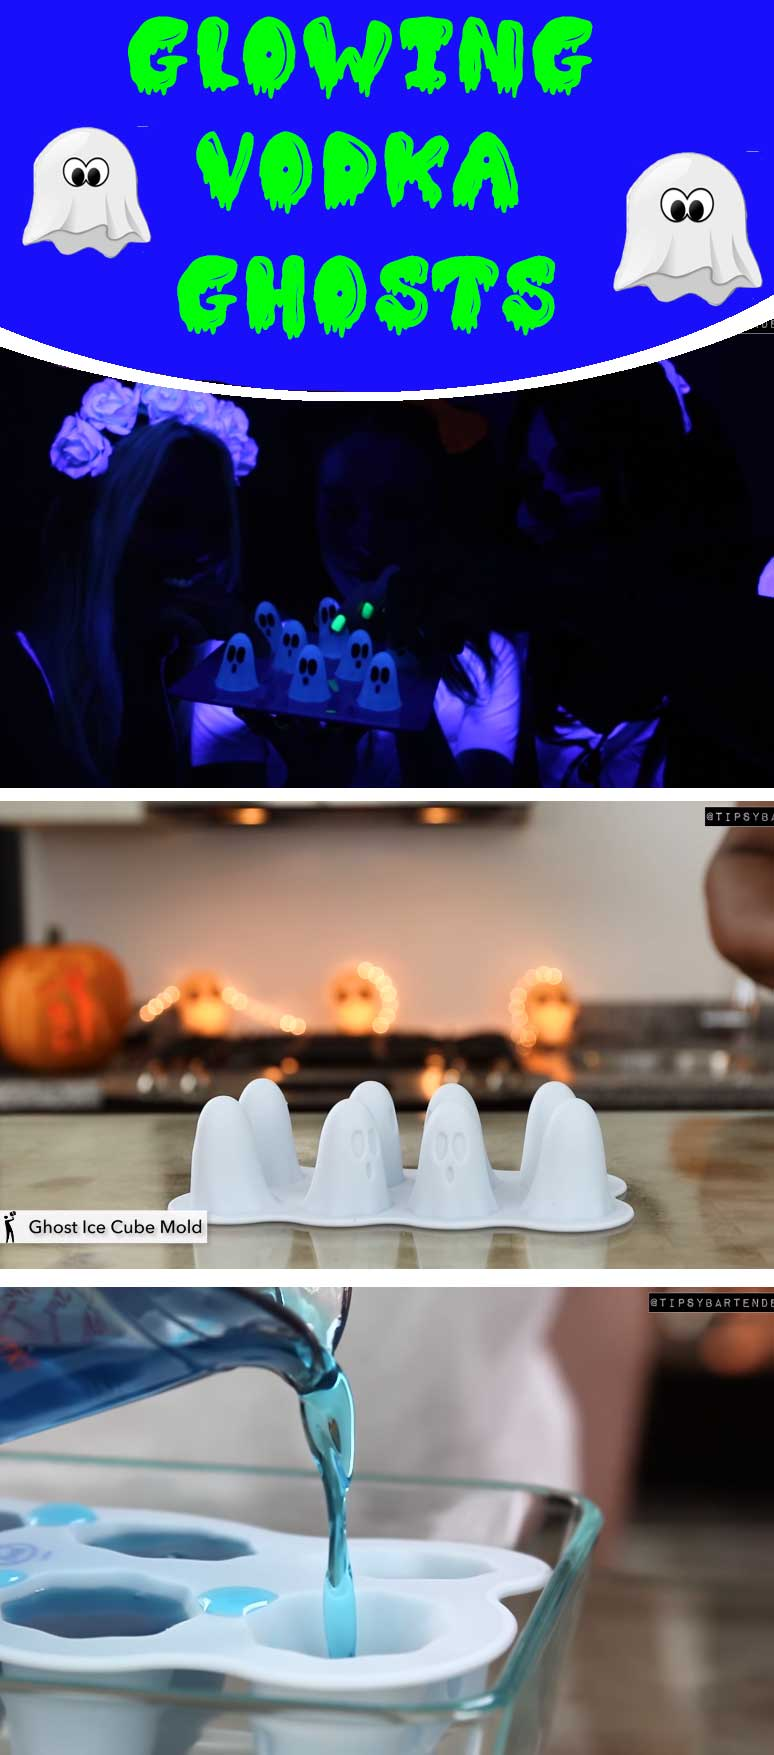 Glowing Vodka Ghosts